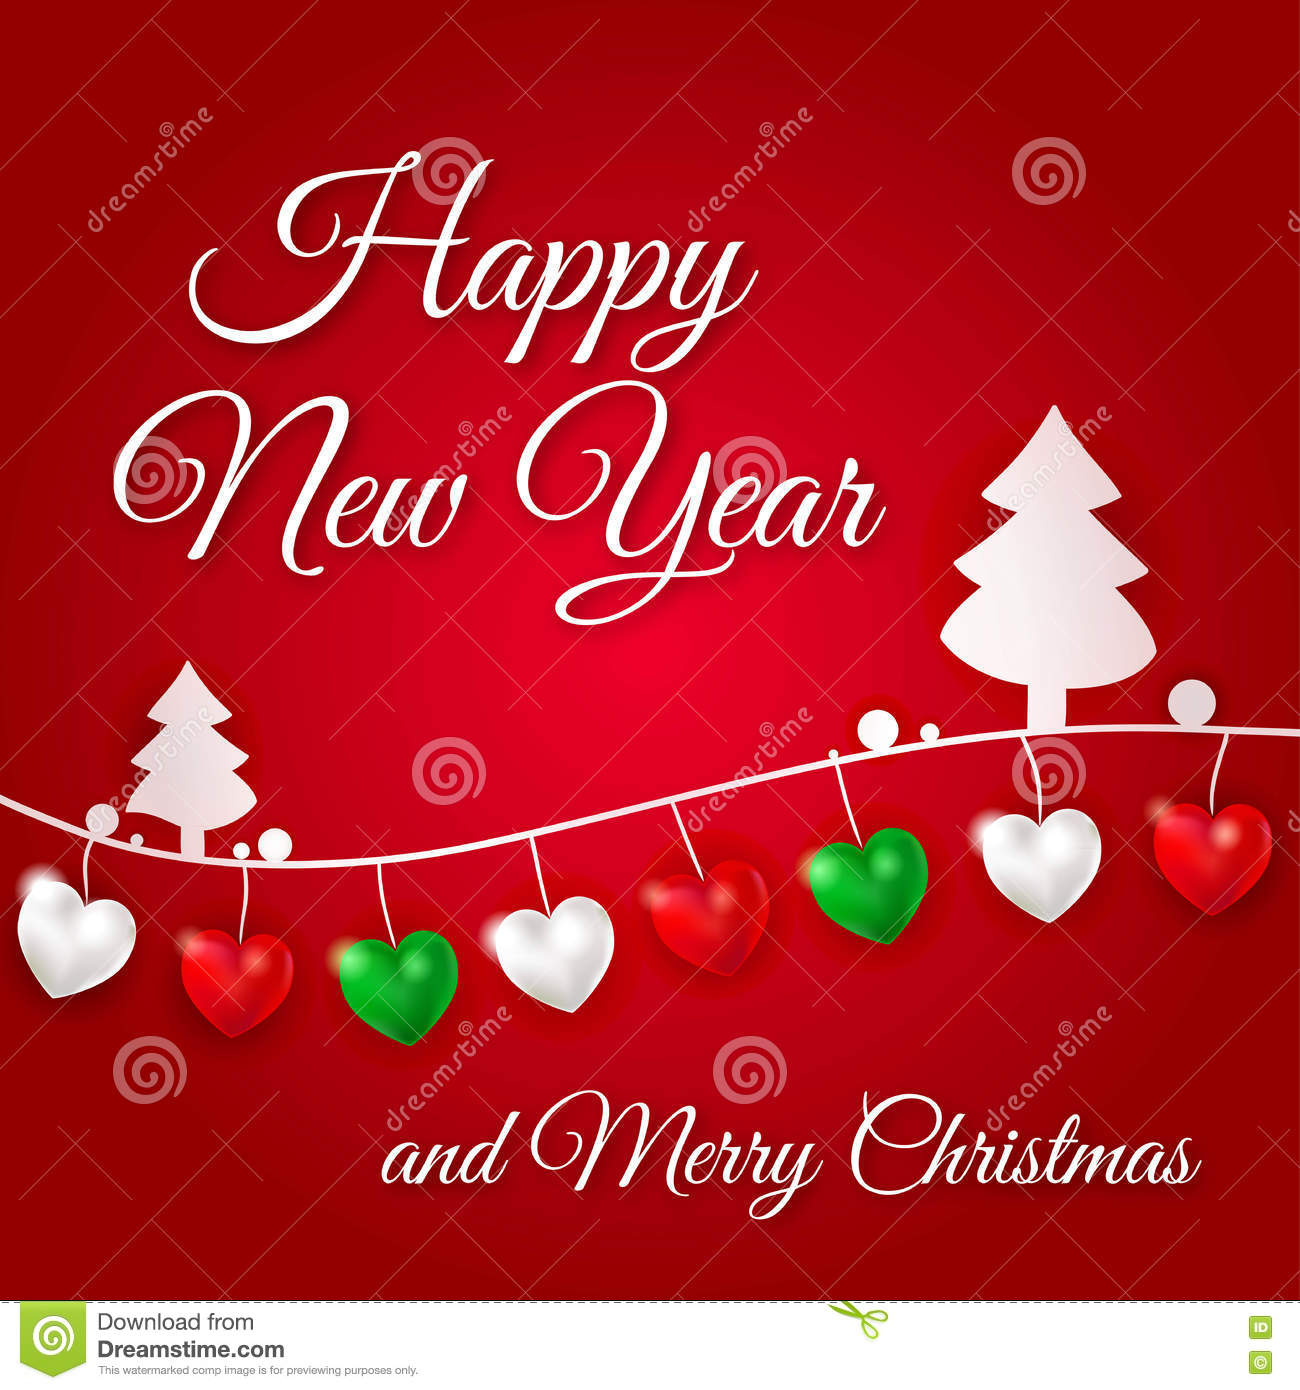 Congratulations On A Happy New Year And Merry Christmas Garland Of